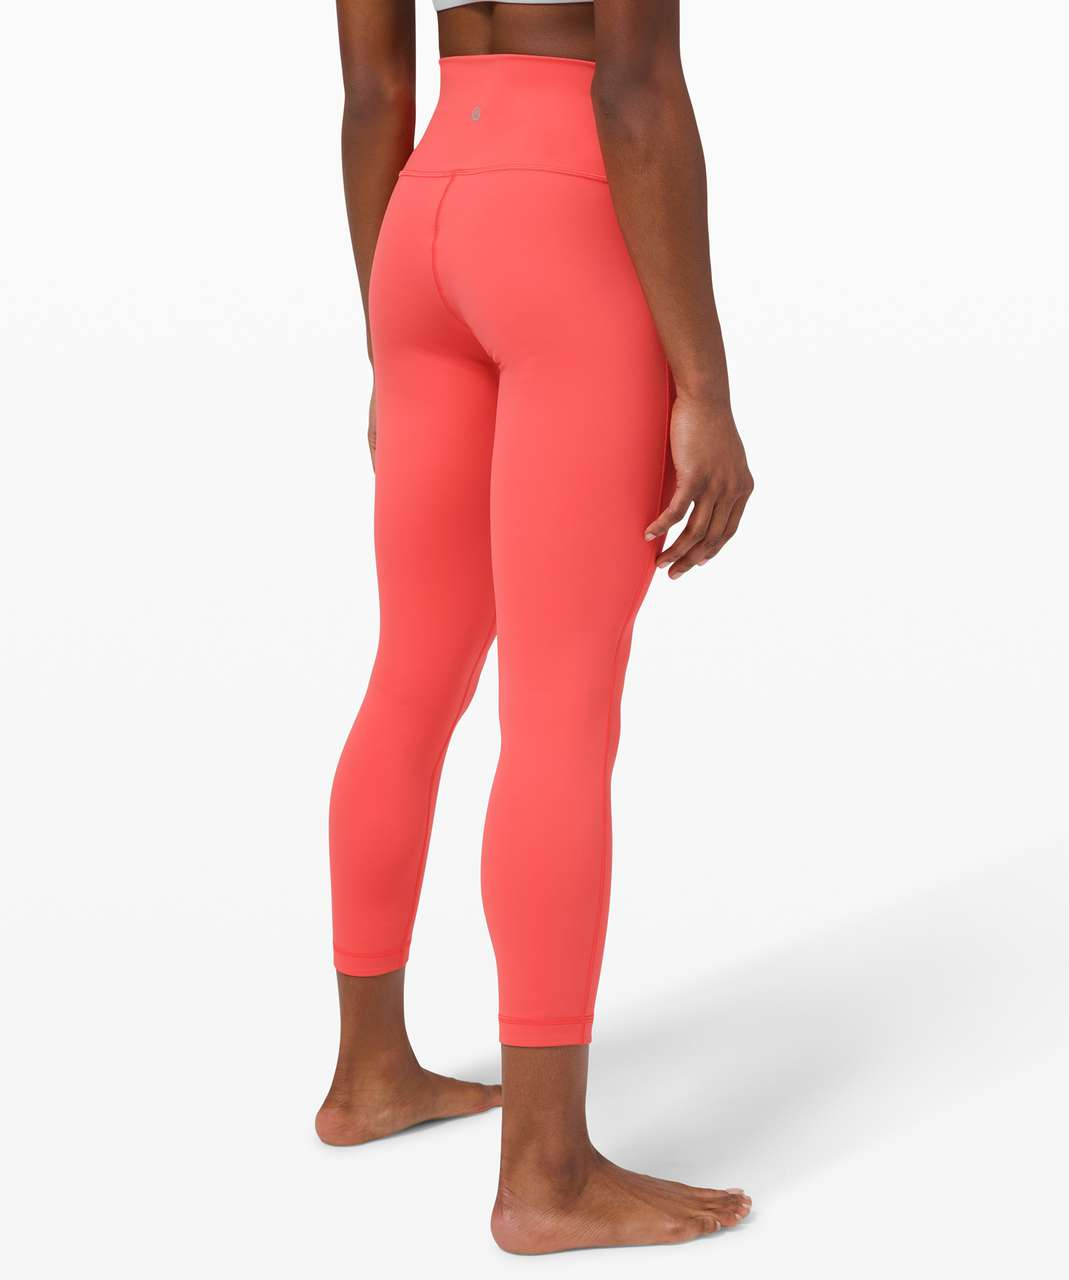 "Lululemon Wunder Under High-Rise 7/8 Tight *Luxtreme 25"" - Watermelon Red"